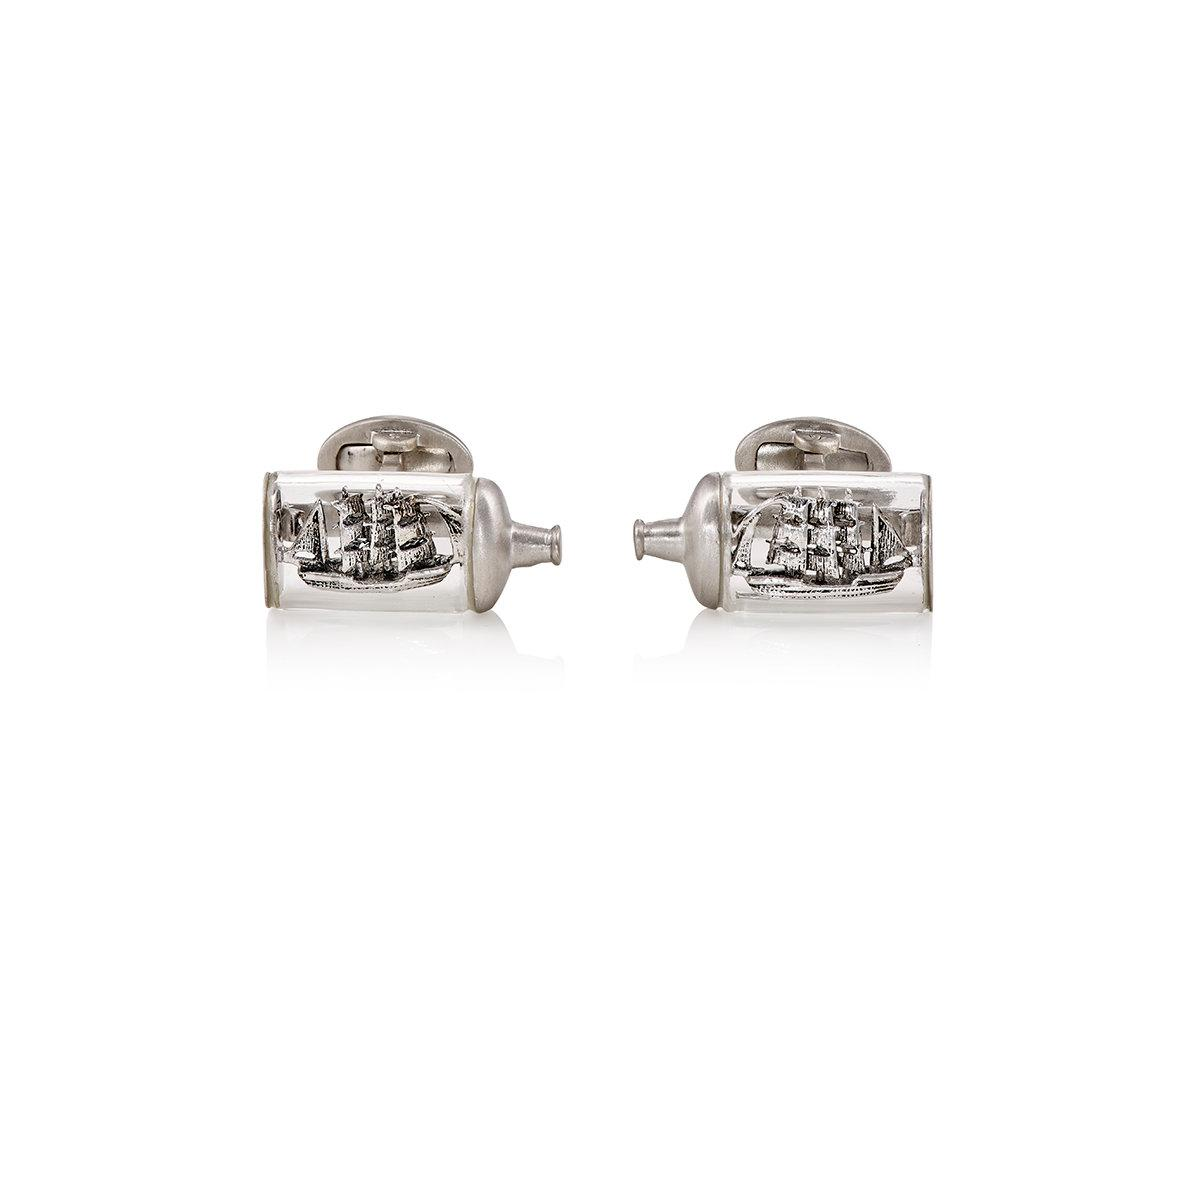 Jan Leslie Mens Three-Wise-Monkeys Cufflinks llqEkBp